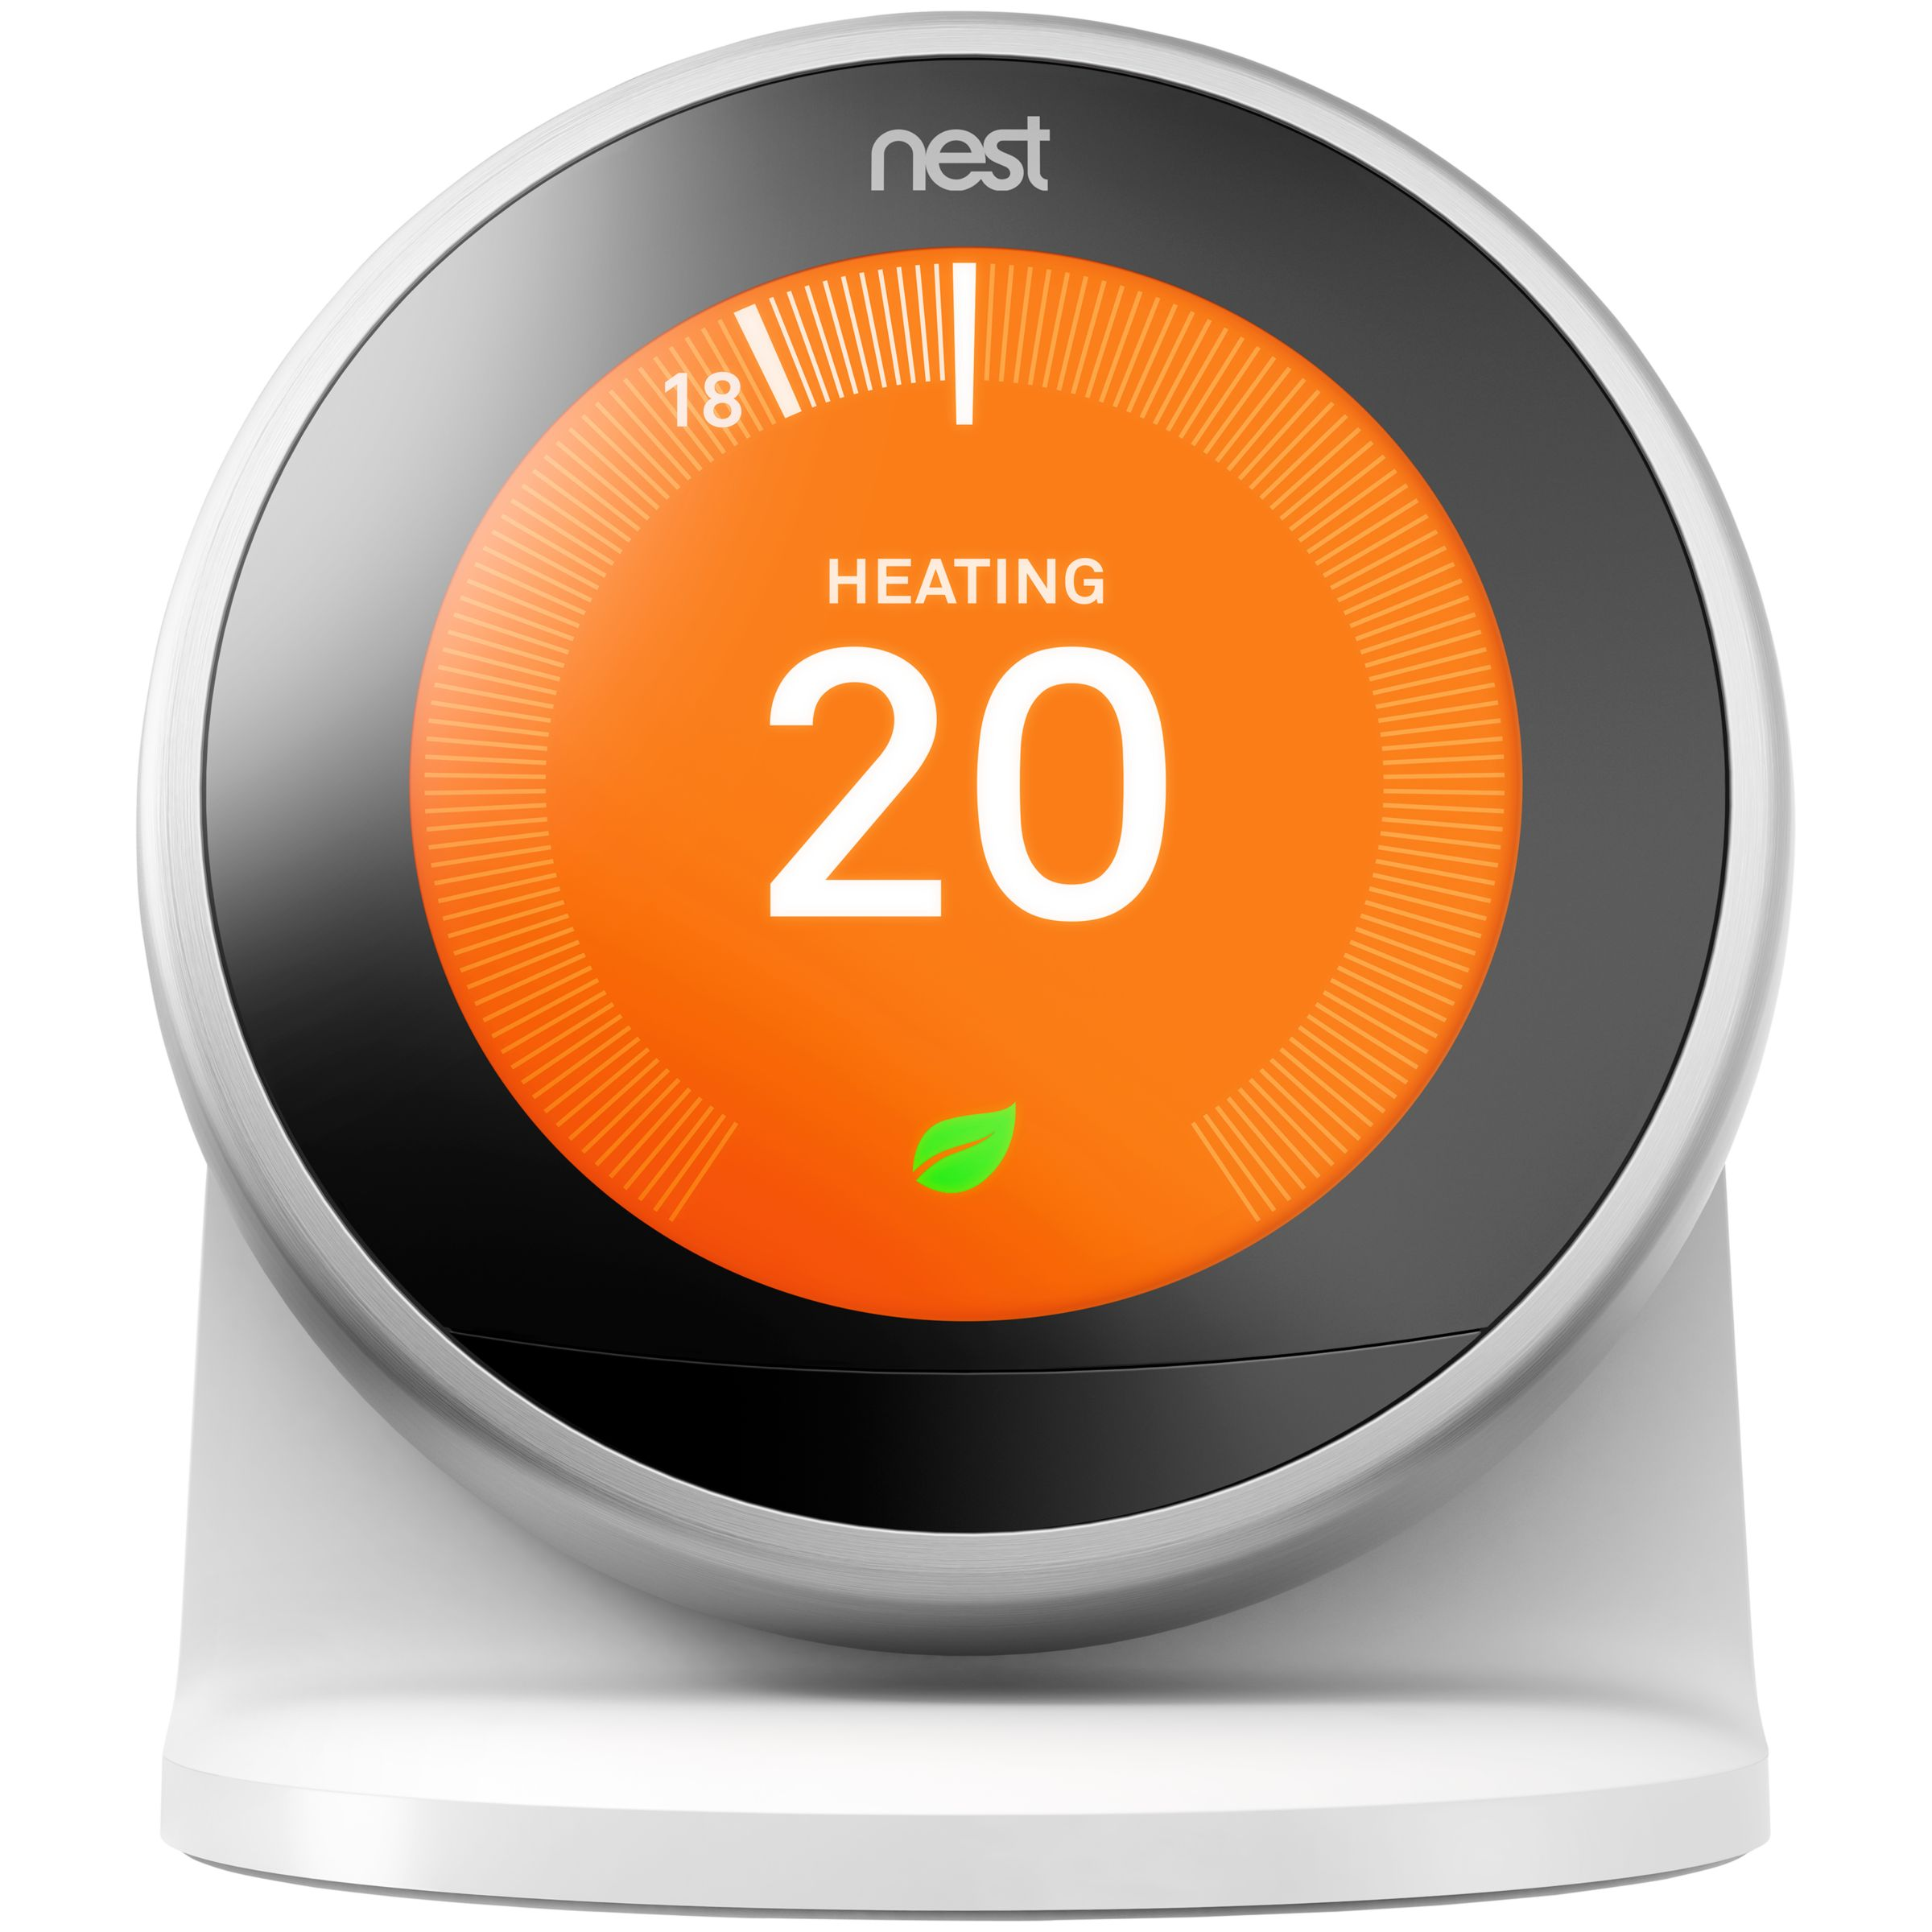 Nest Stand for Nest Learning Thermostat, 3rd Generation